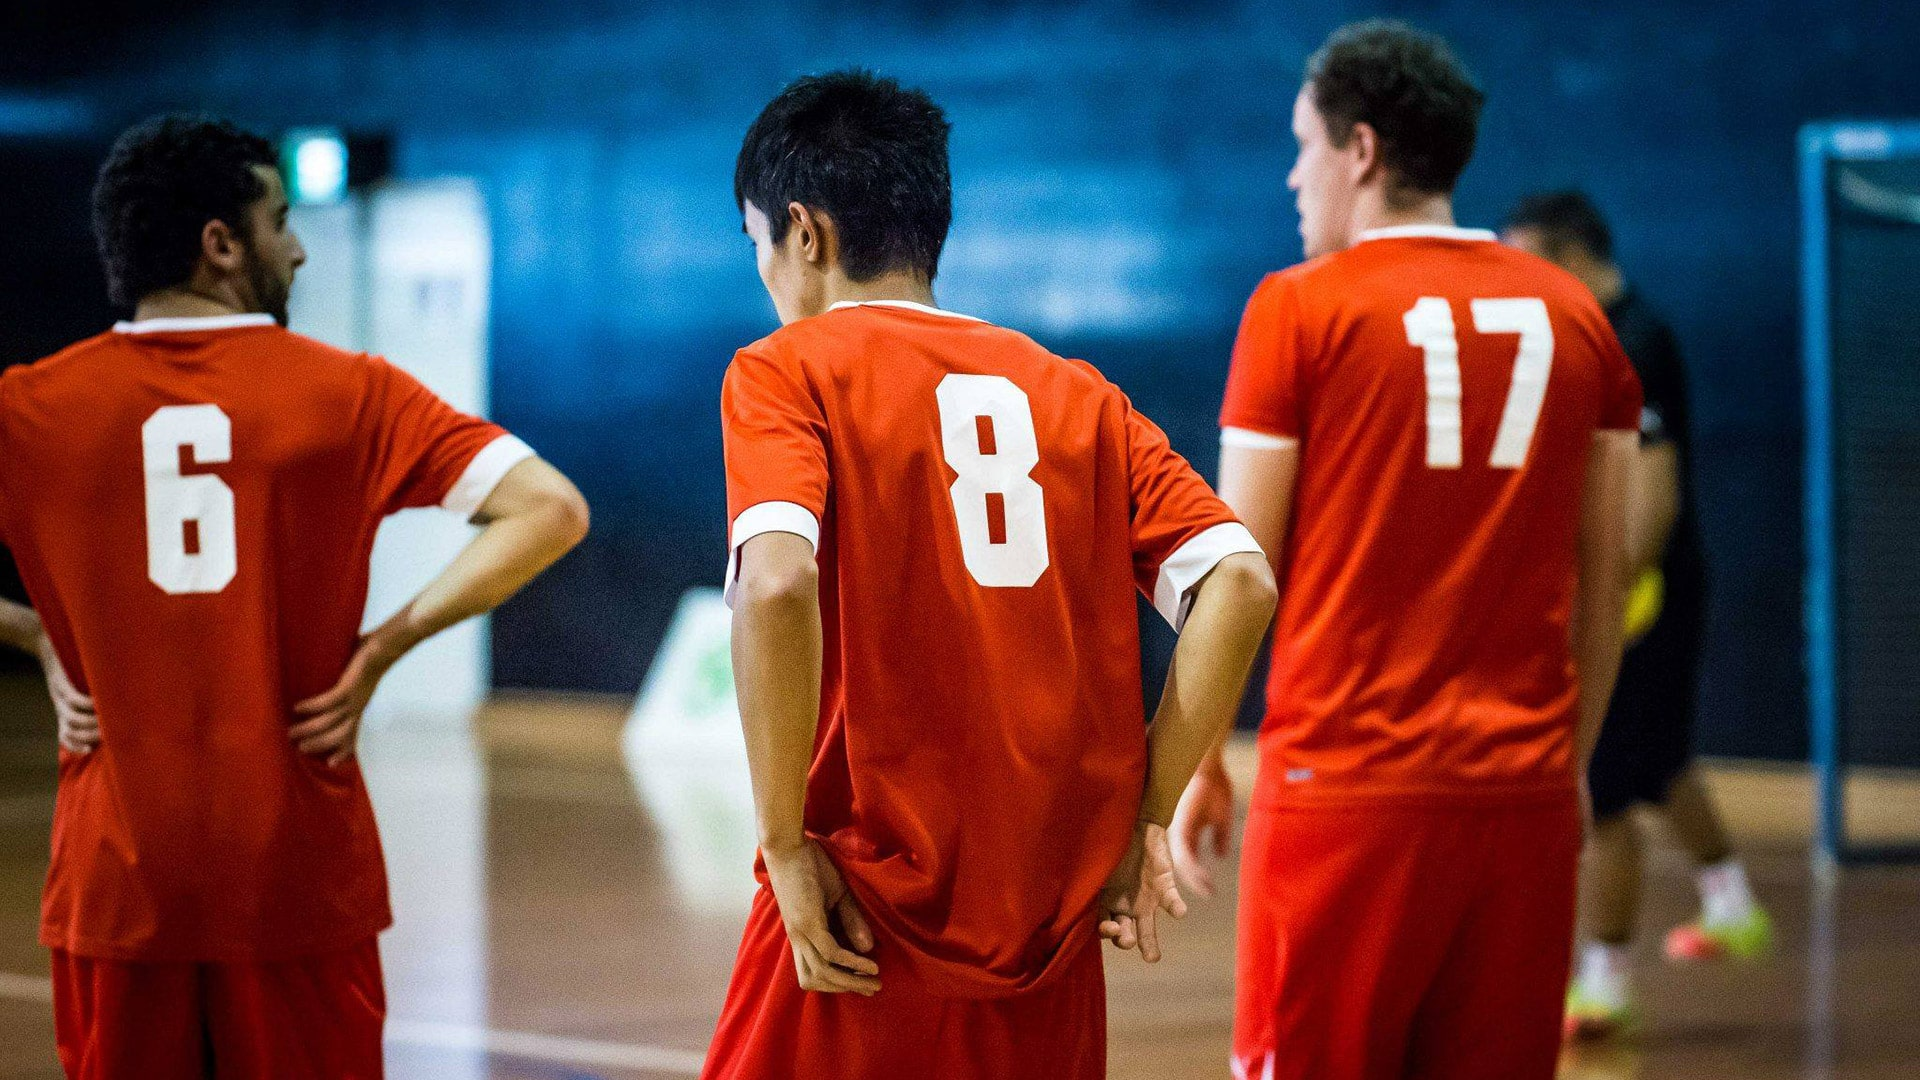 Image shows three male soccer players' backs in red uniforms as the stand on the side of an indoor hall where a game is being played.